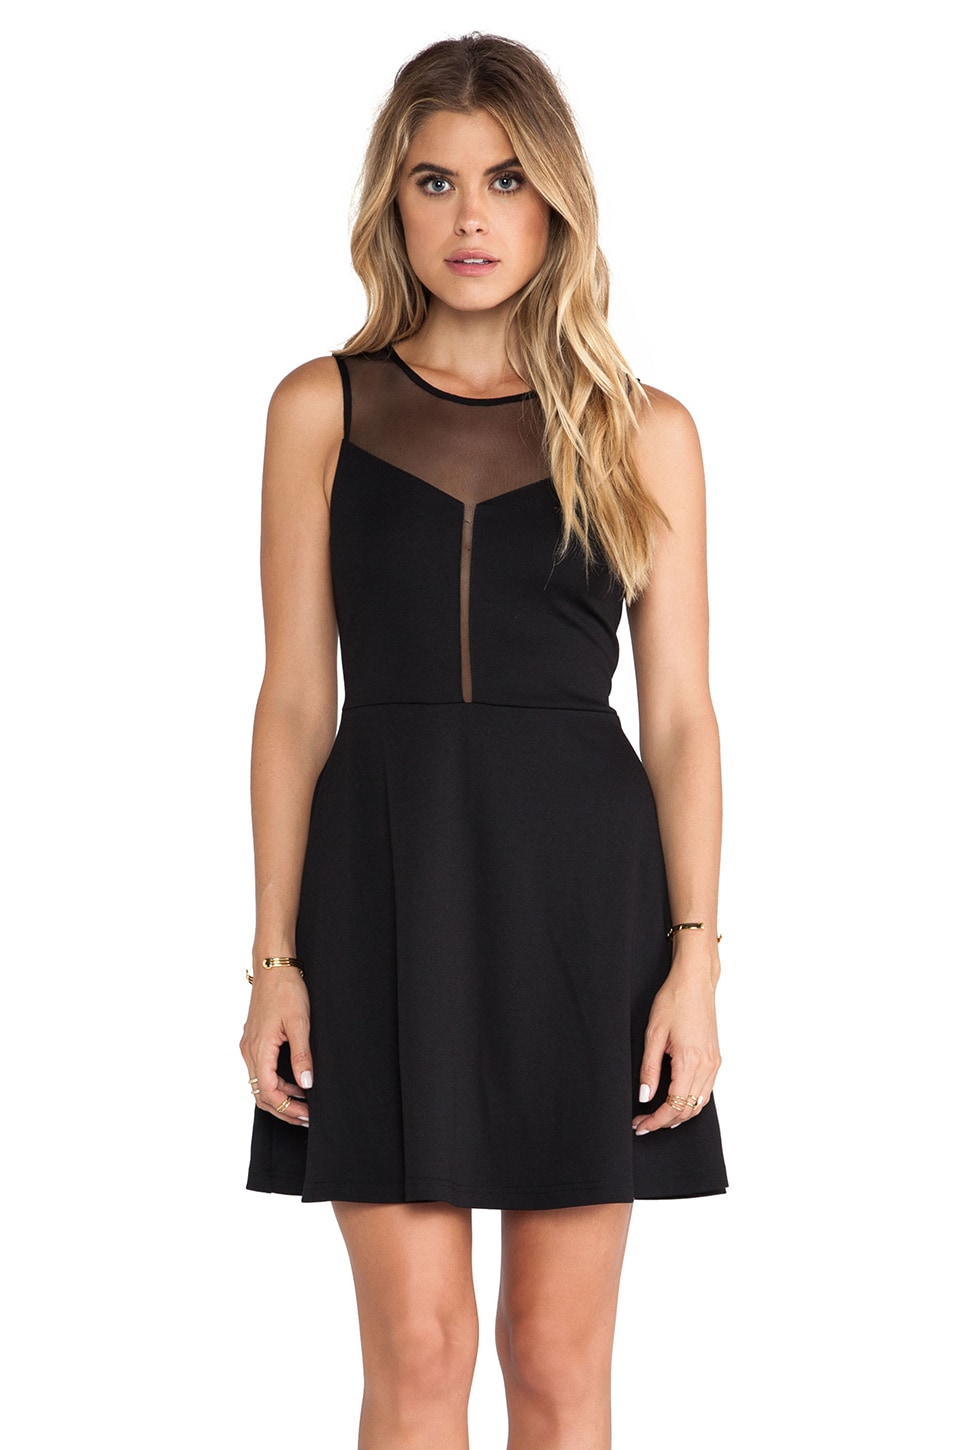 BB Dakota Portola Dress in Black